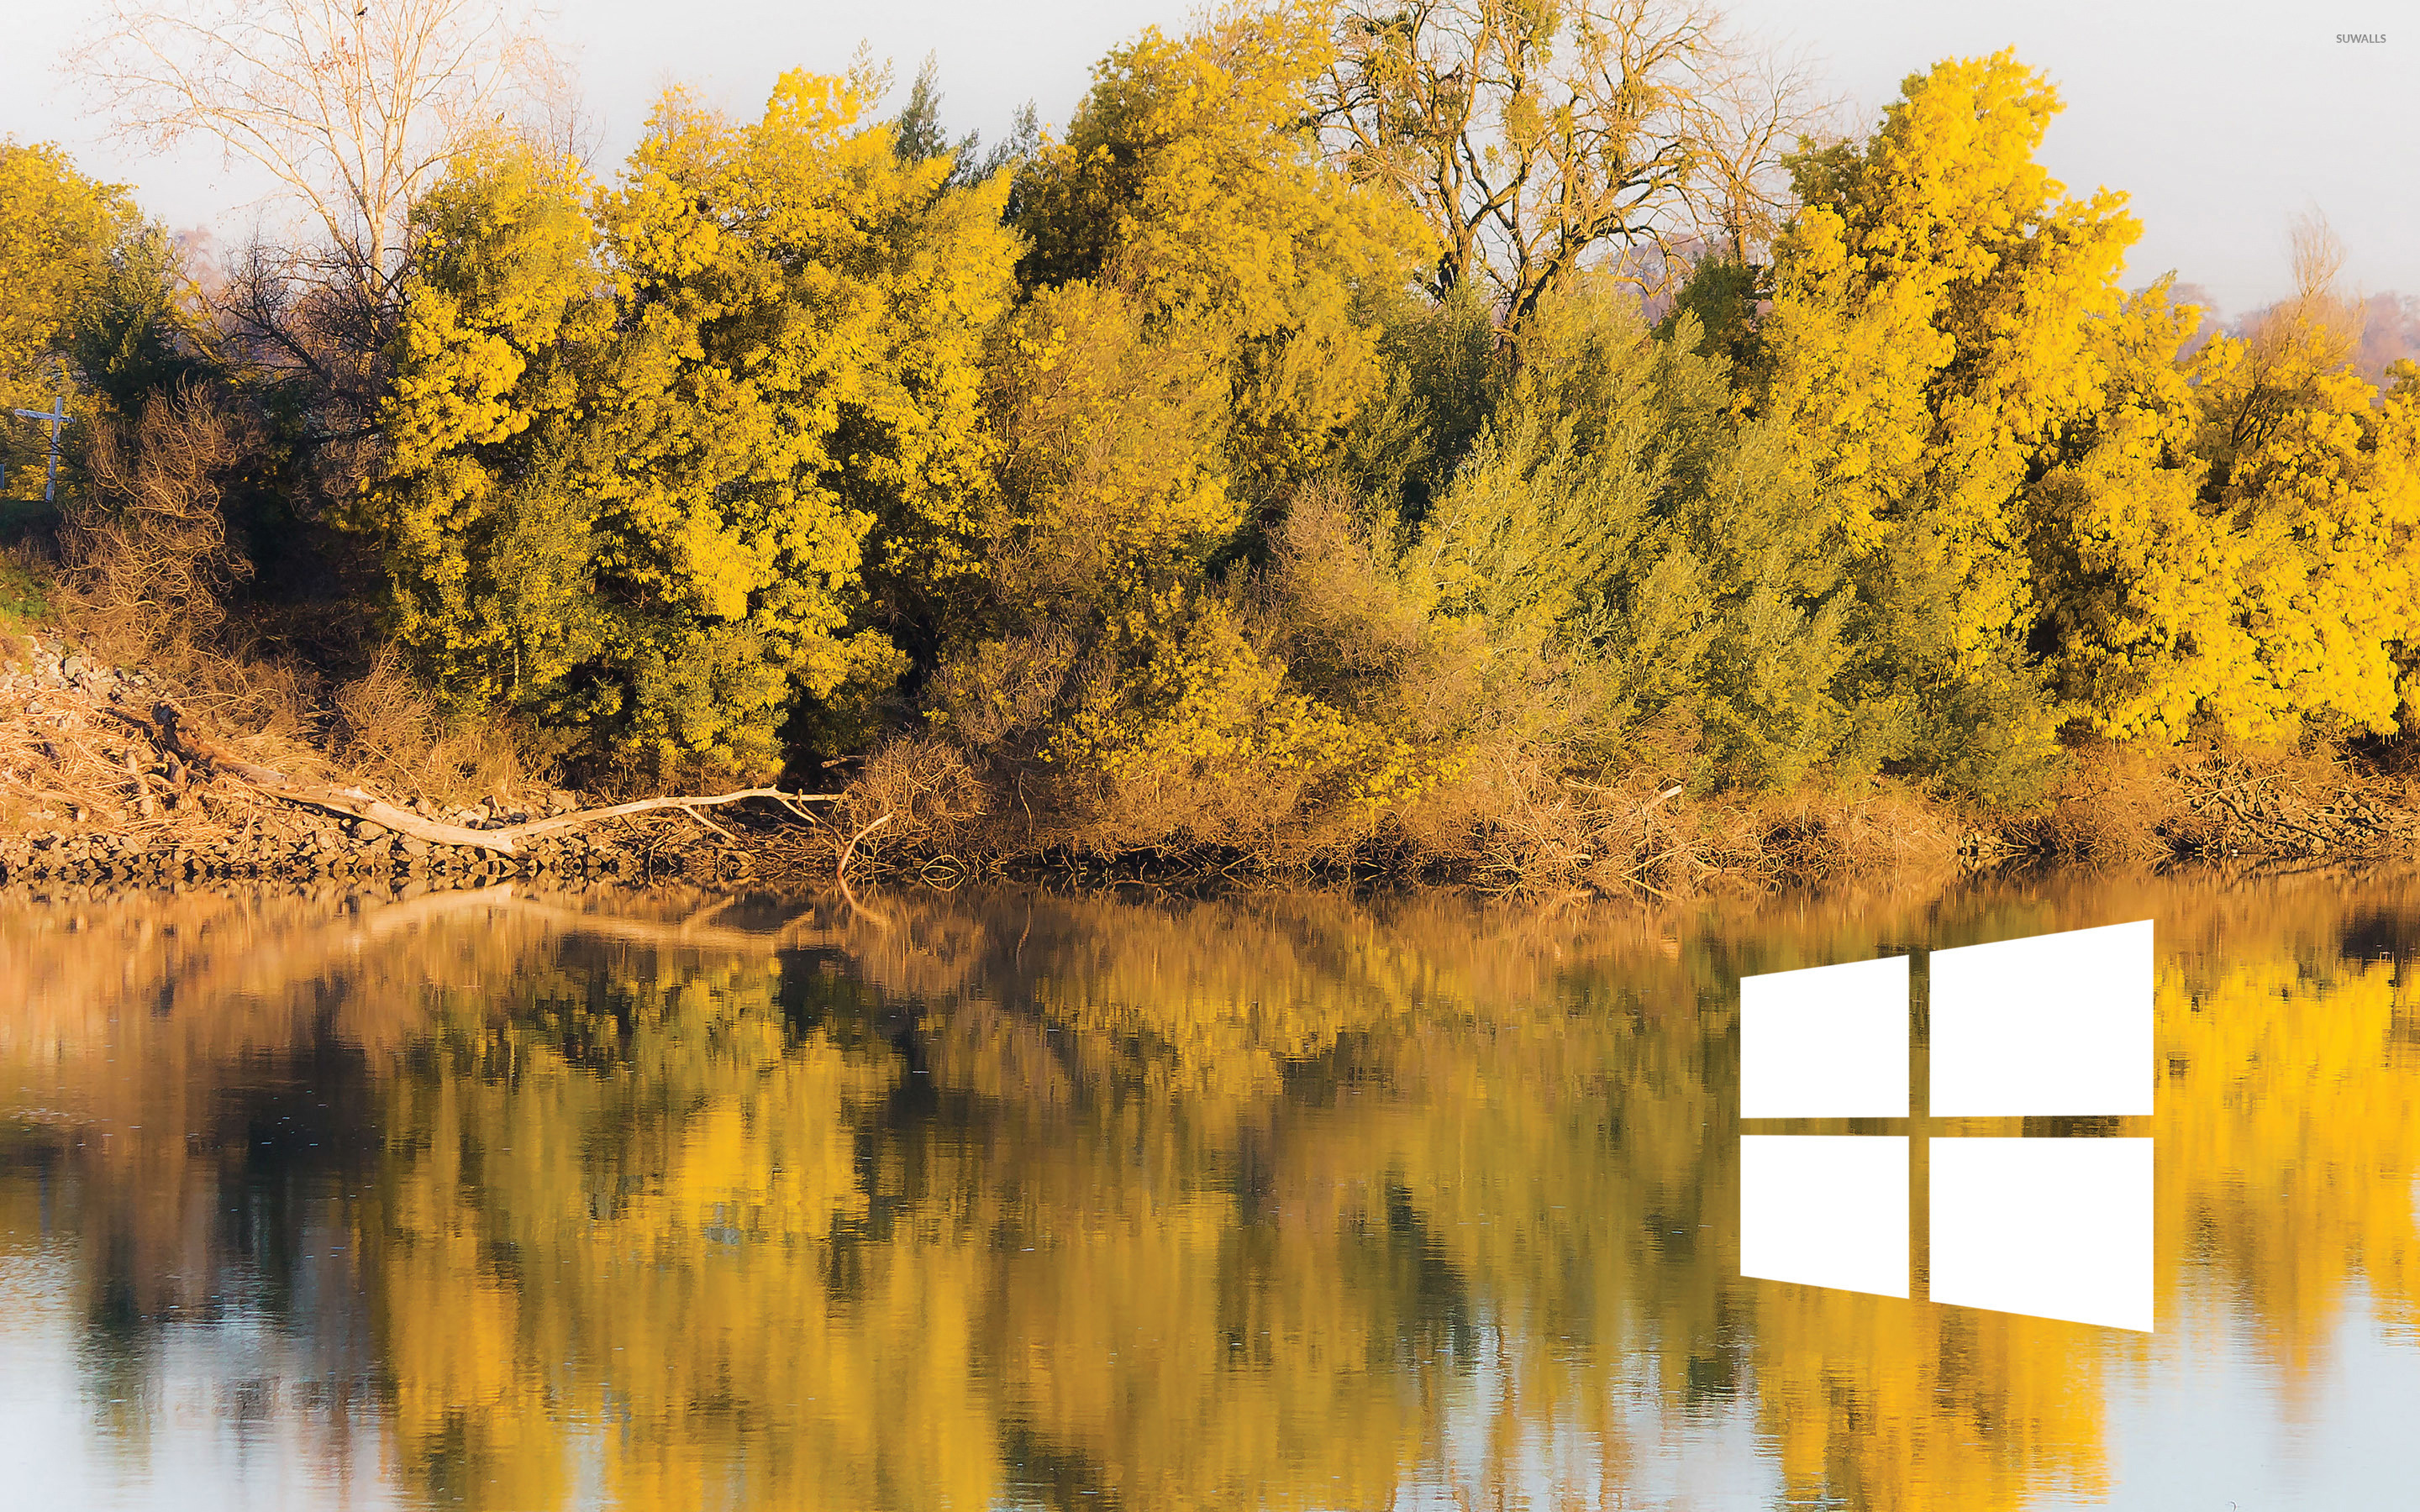 Autumn Free Wallpaper And Screensavers For Windows 7